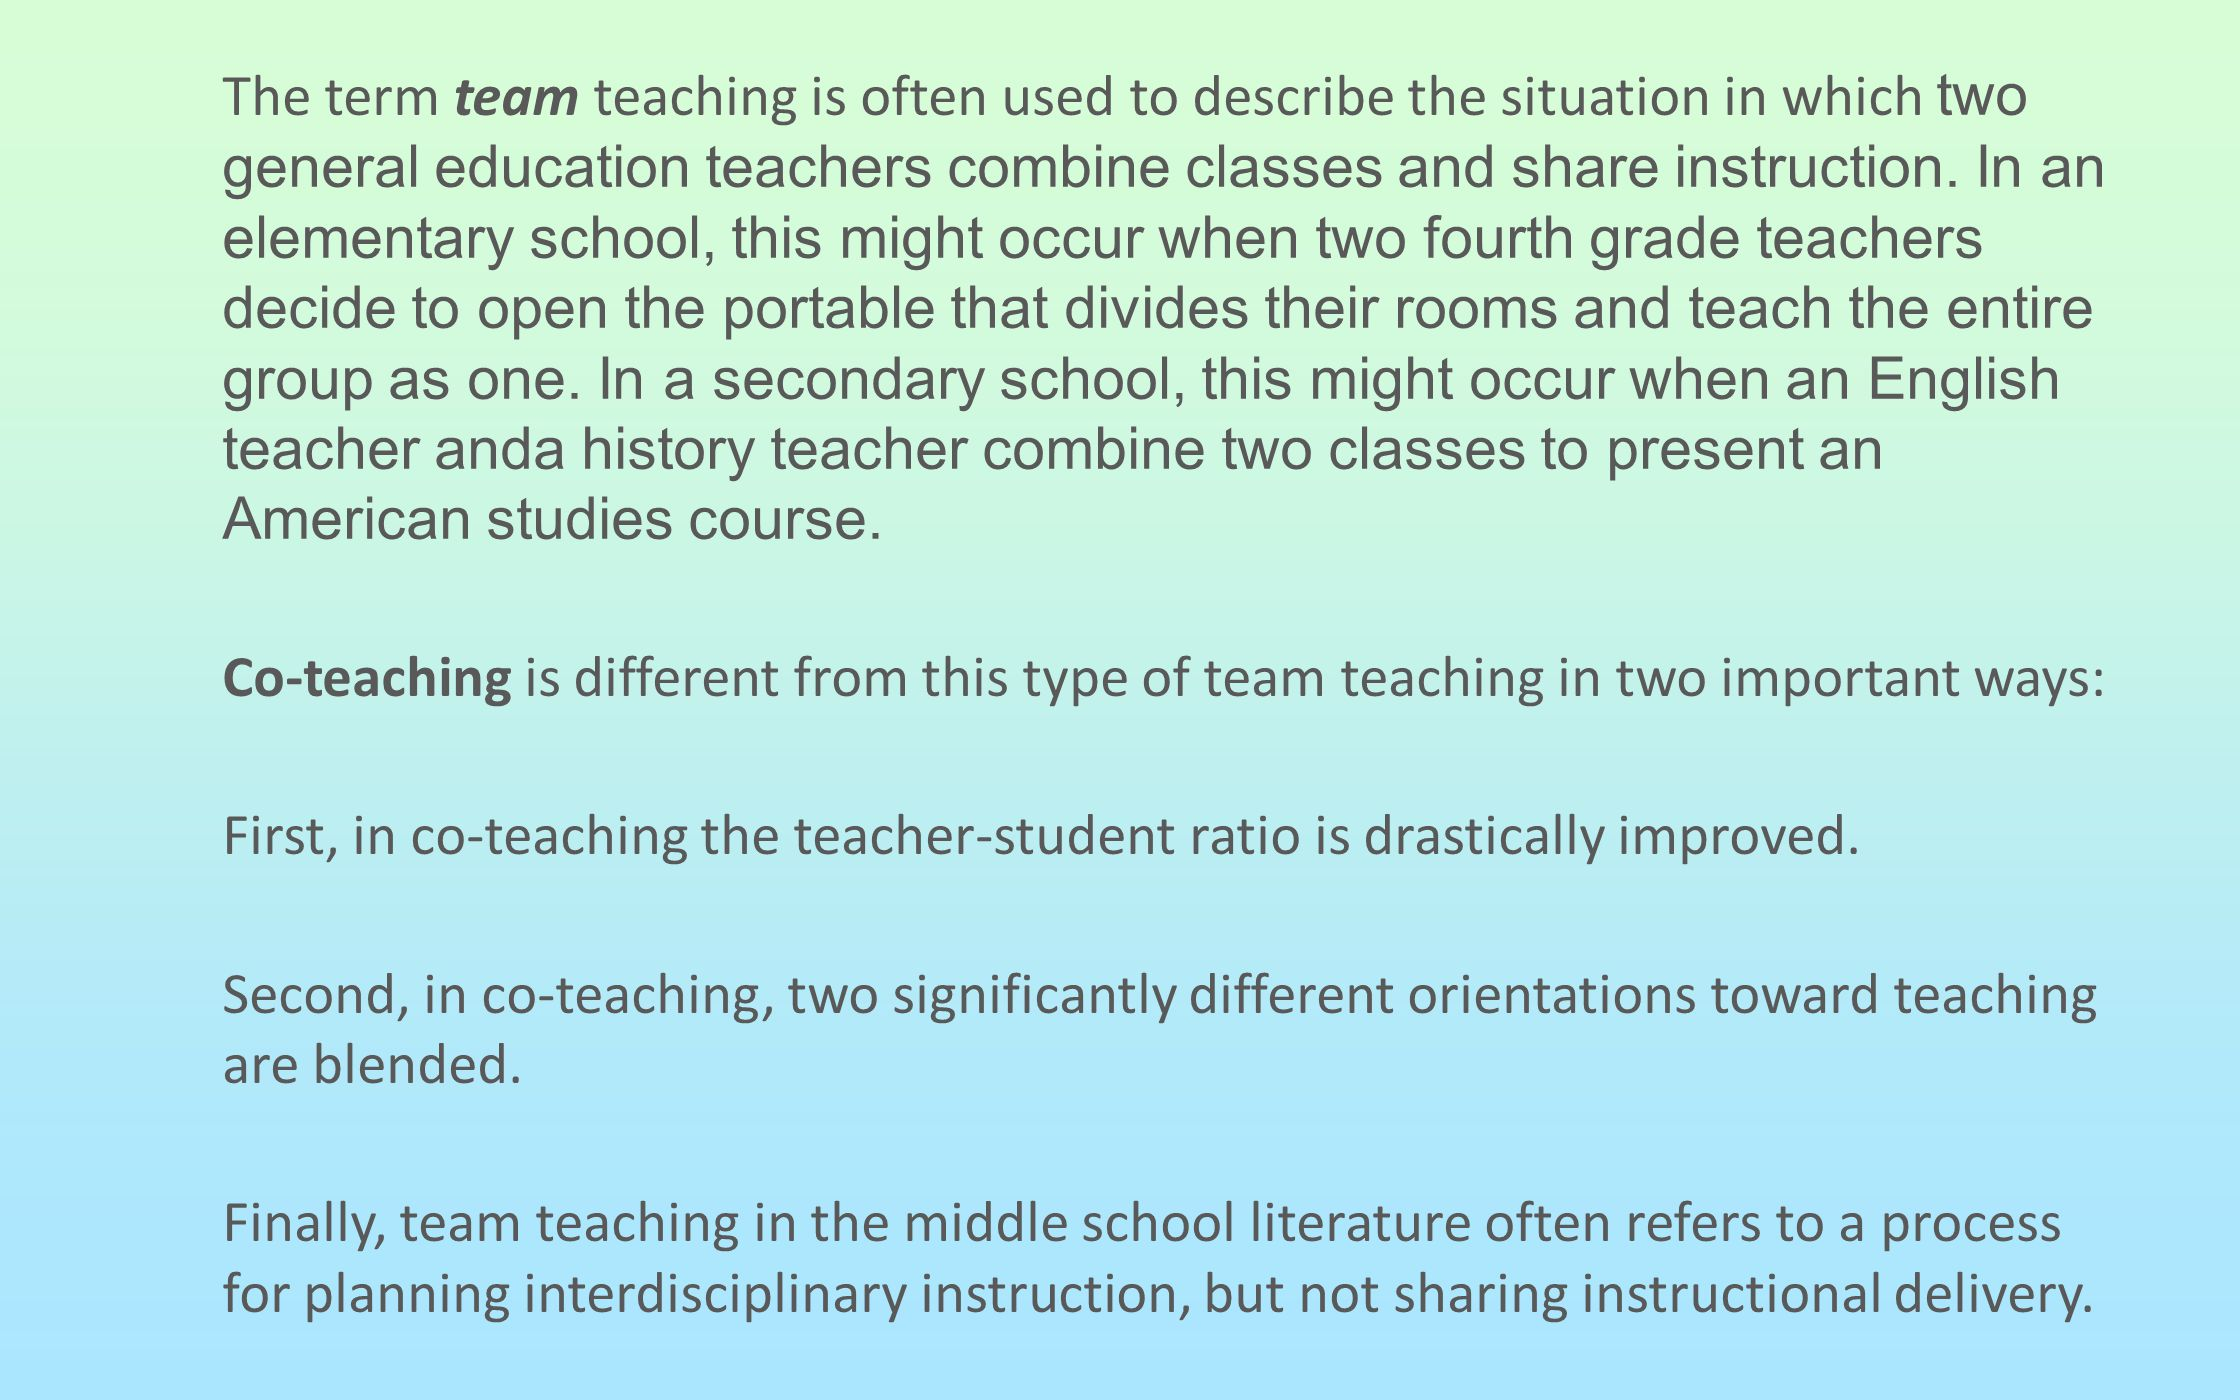 The term team teaching is often used to describe the situation in which two general education teachers combine classes and share instruction.